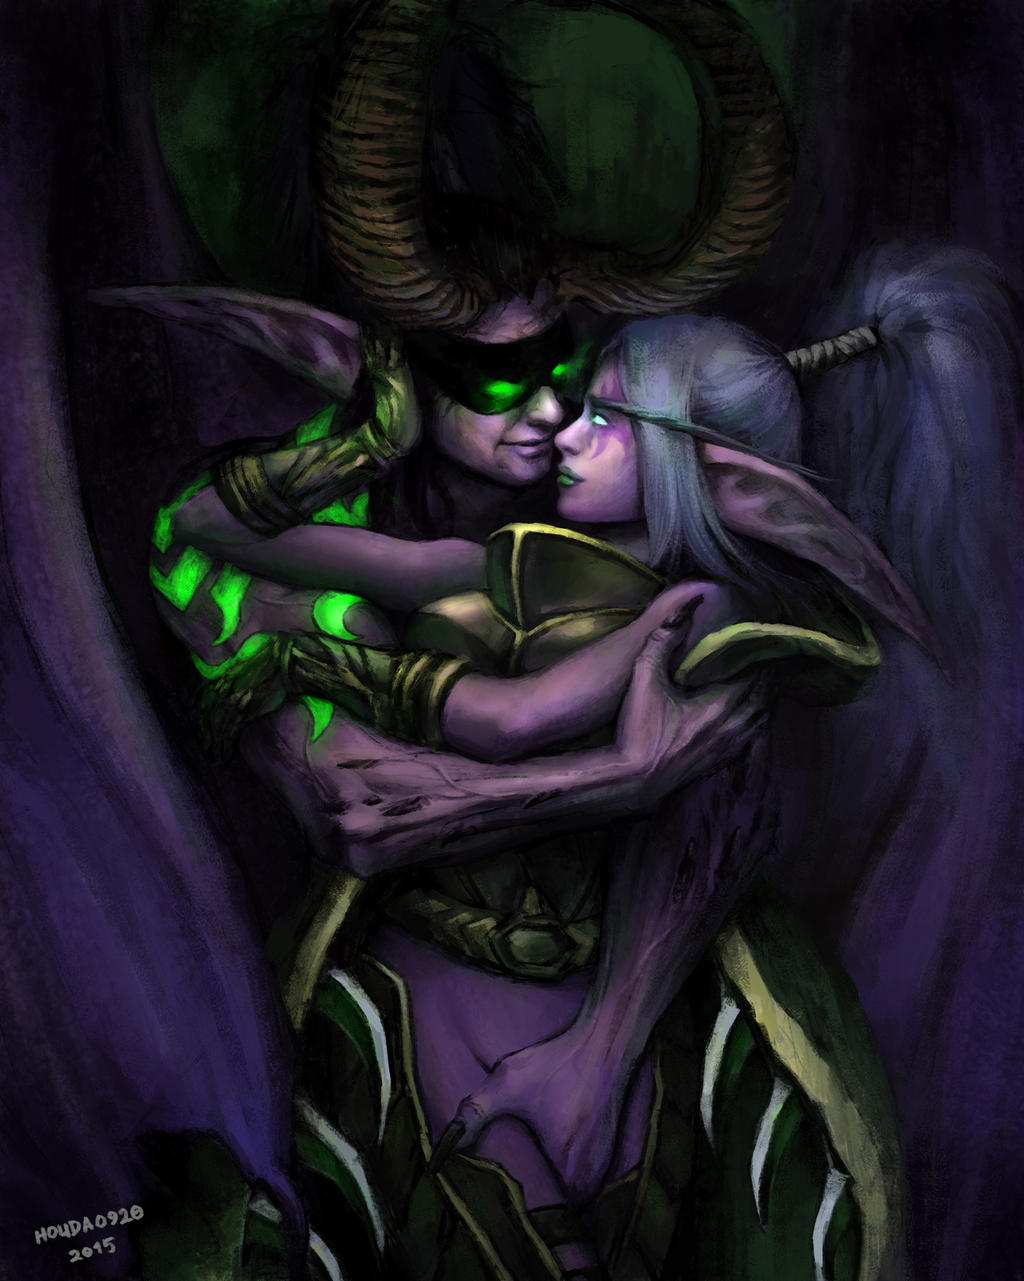 Wow demon hunter porn fanfic naked tube